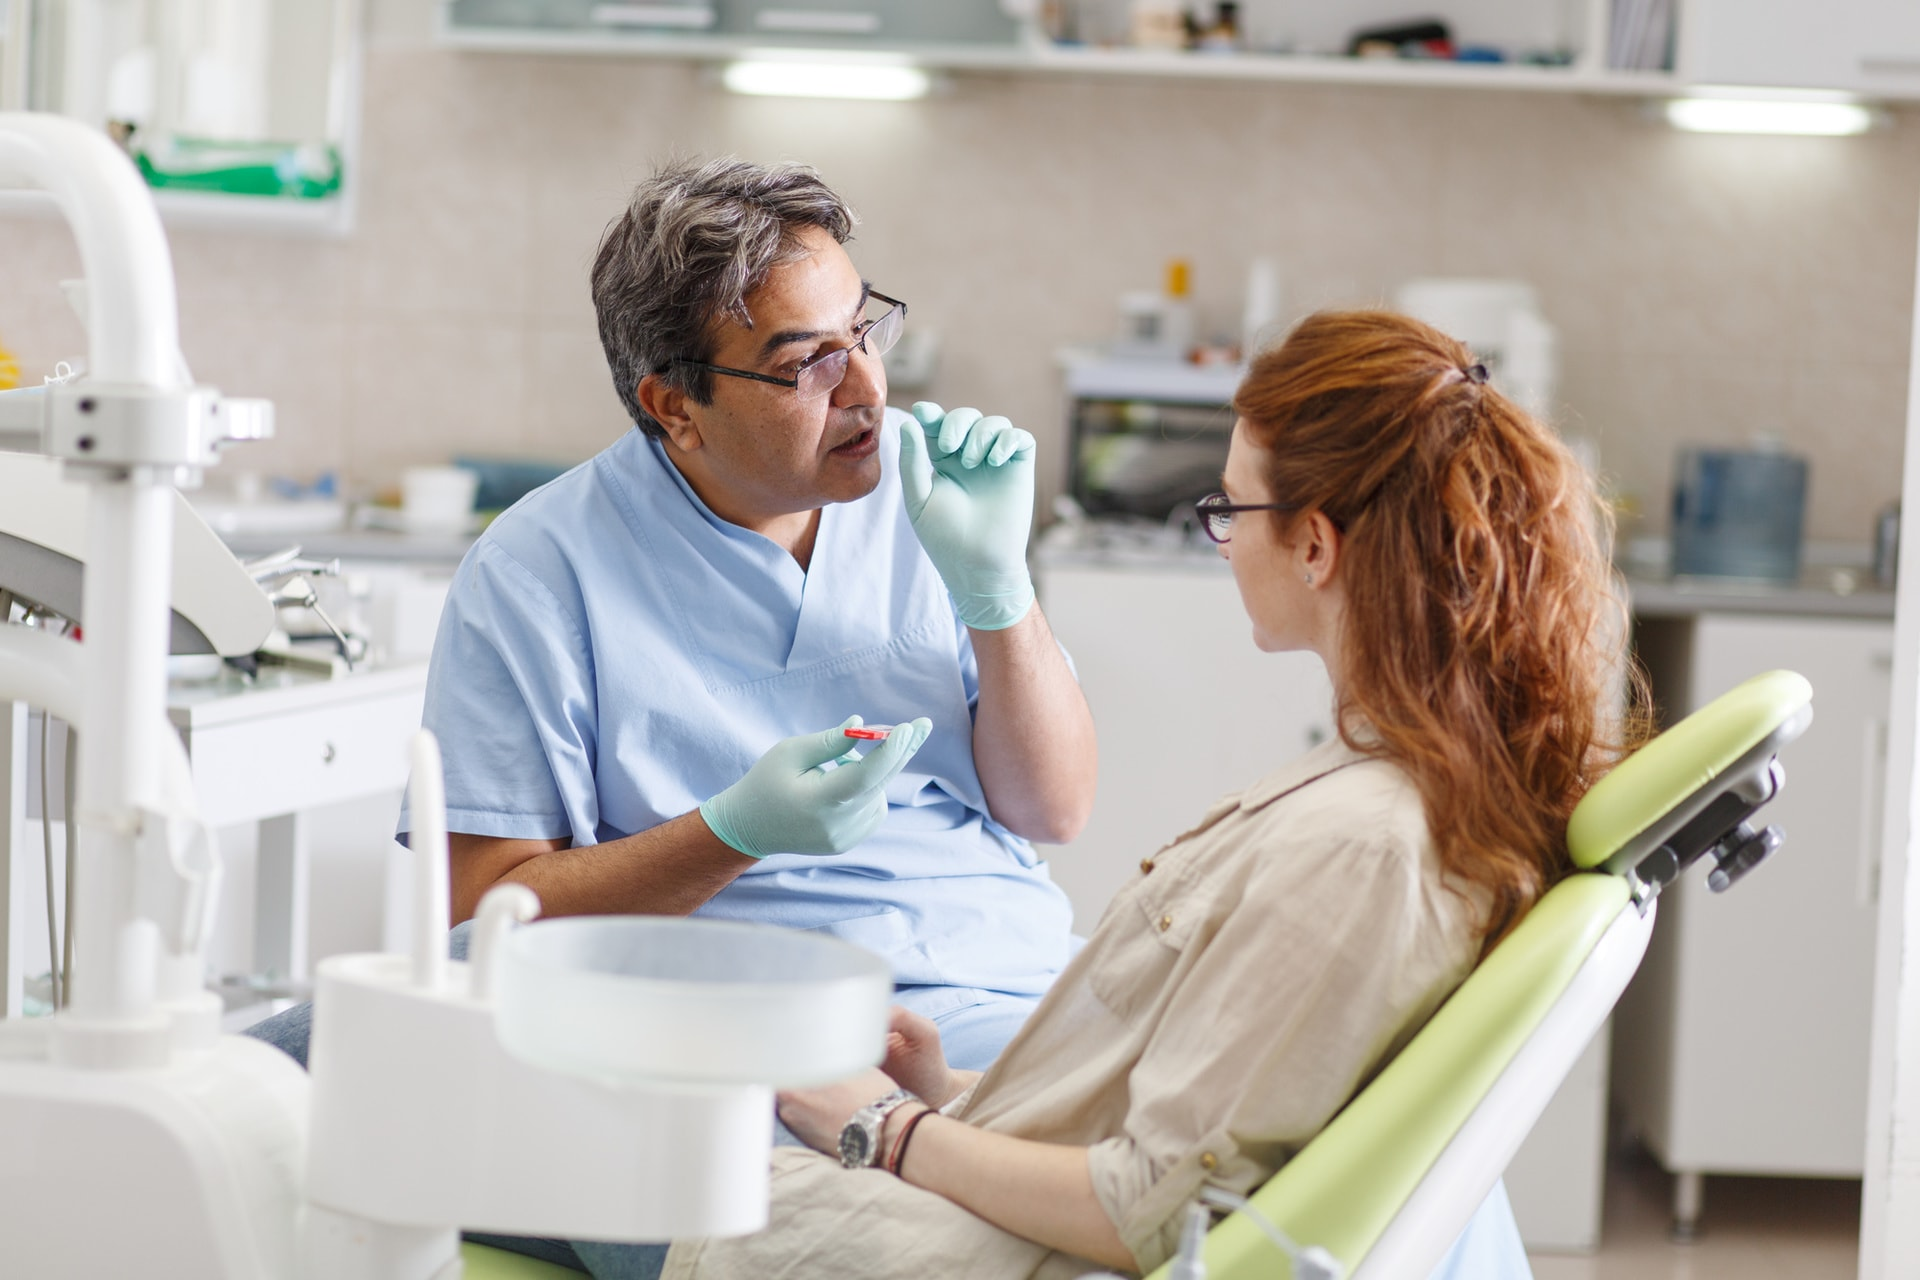 I'm Moving Soon -- How Should I Look for a Dentist Near Me?